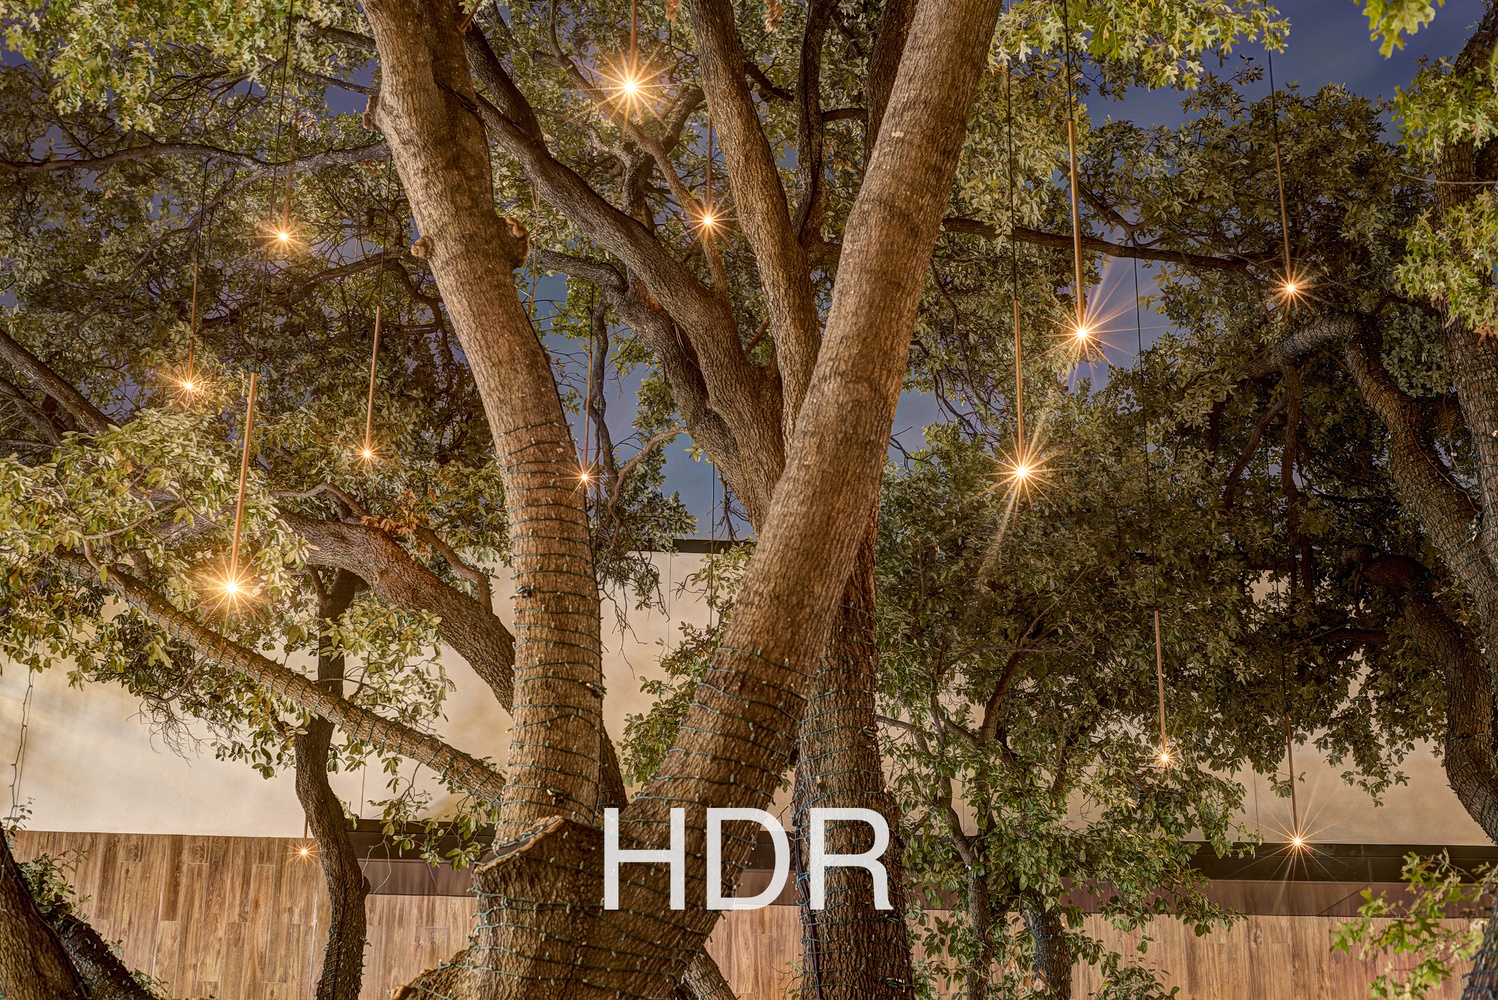 an HDR photo of a tree with lights